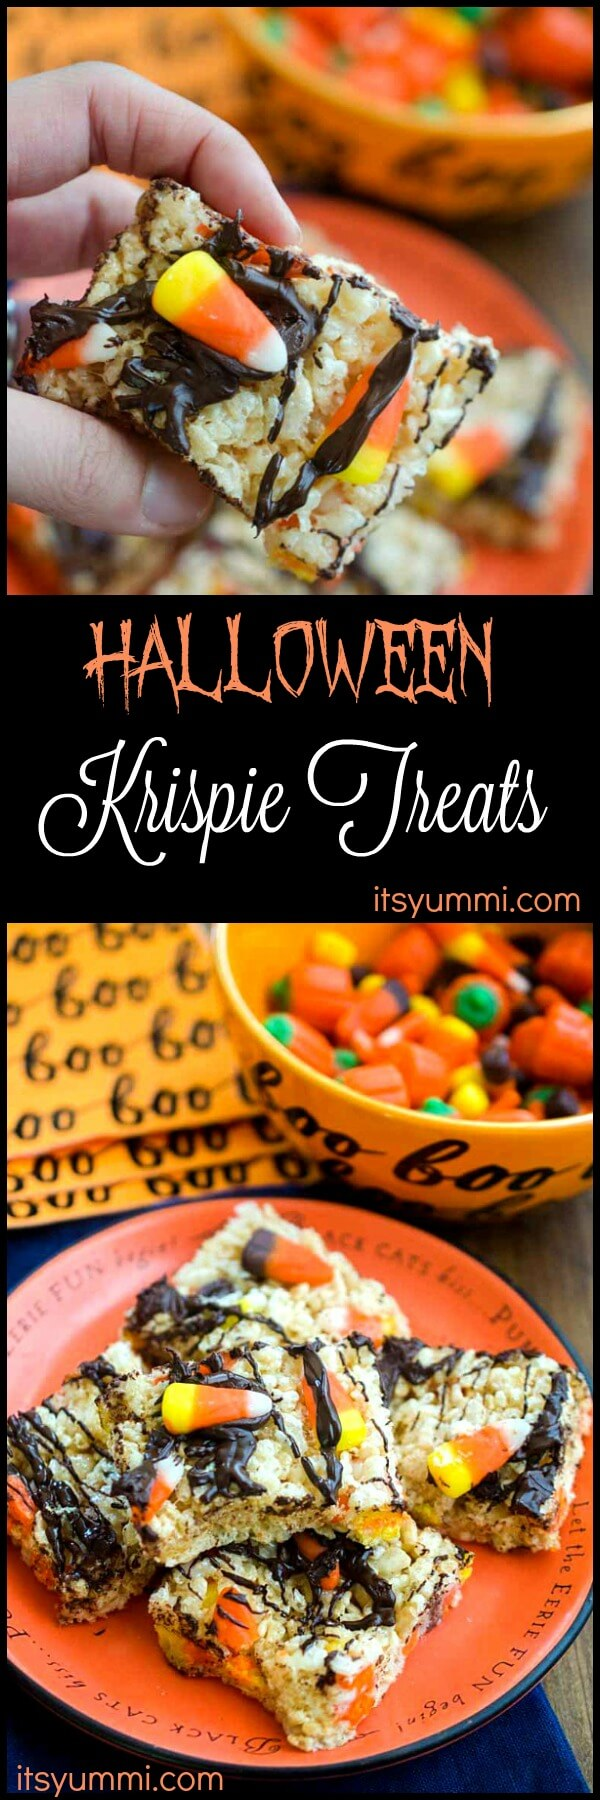 Halloween Rice Krispie Treats are the perfect sweet crispy treats for a #Halloween party or #TrickOrTreat. Add popsicle sticks and they can easily become Halloween Rice Krispie treats on a stick!